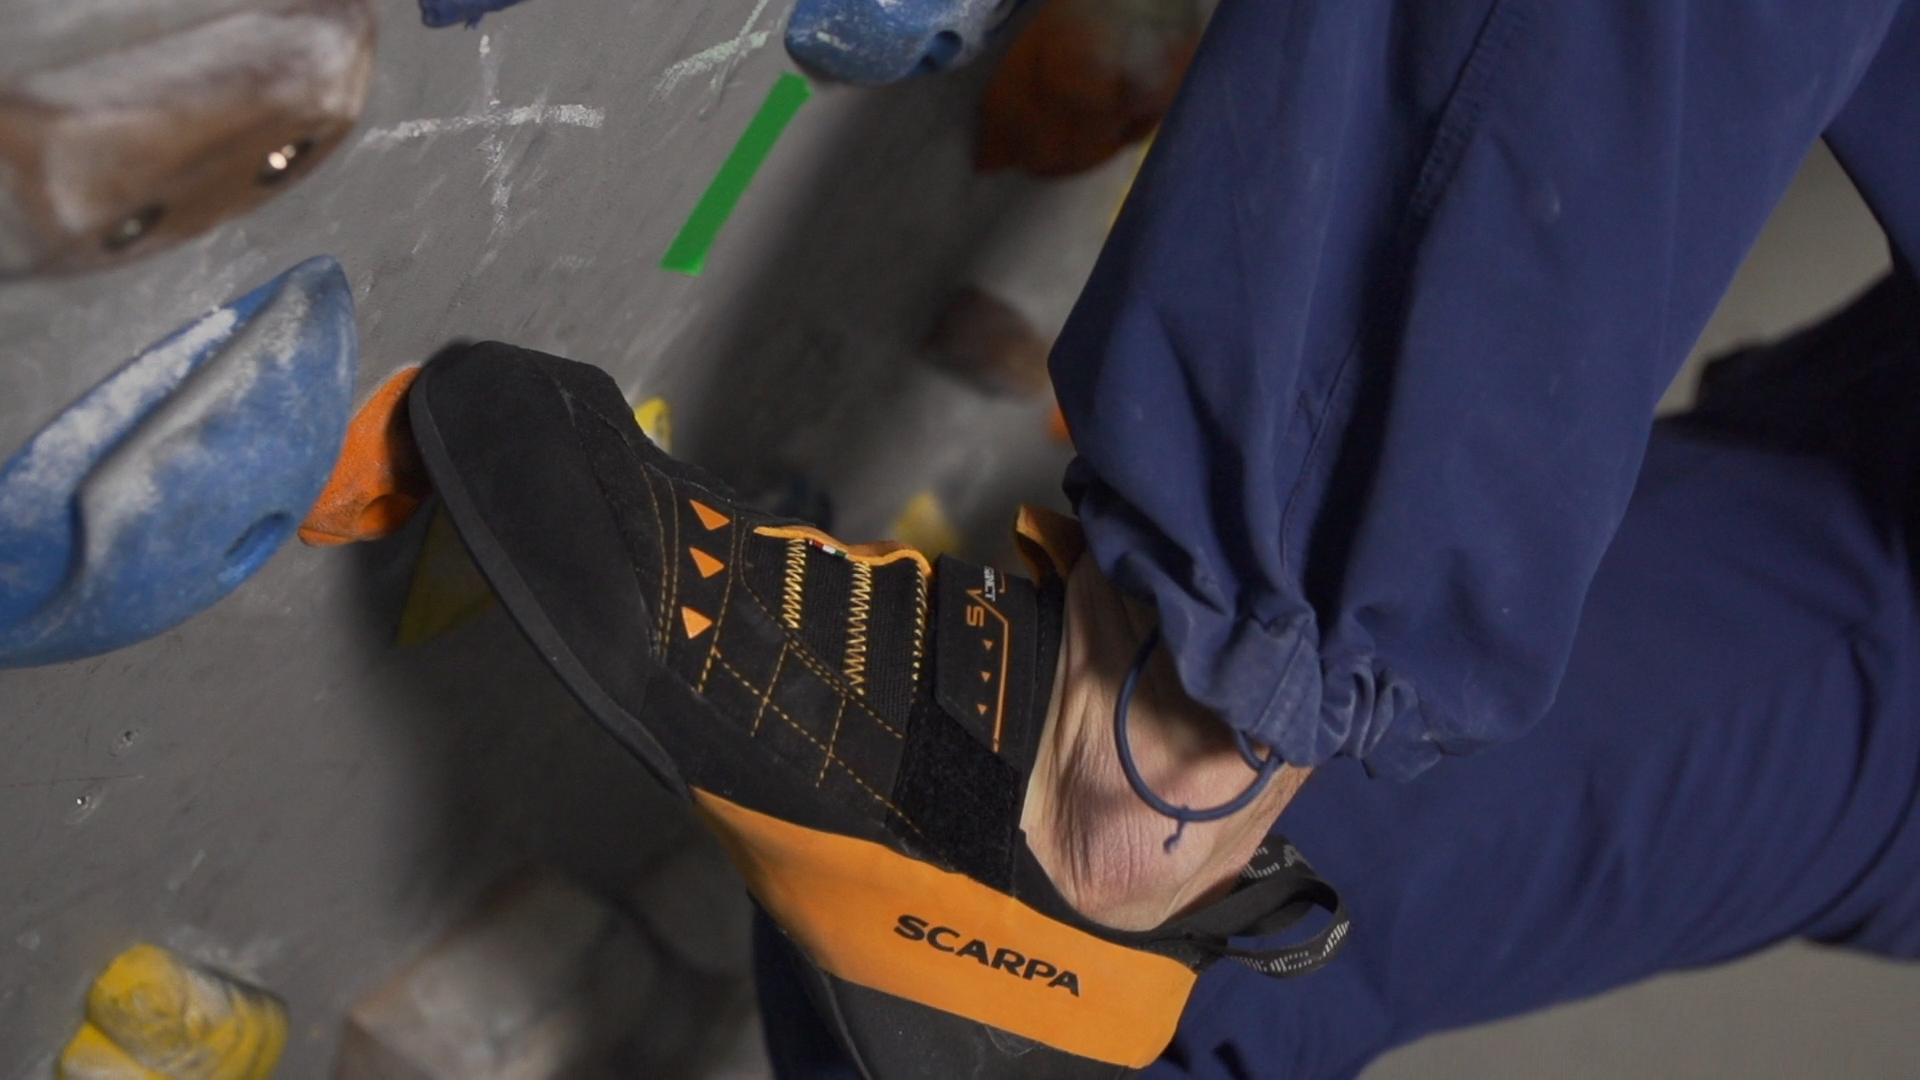 bd622bd5b1 EpicTV Video  Scarpa Instinct Climbing Shoe 2015 Review